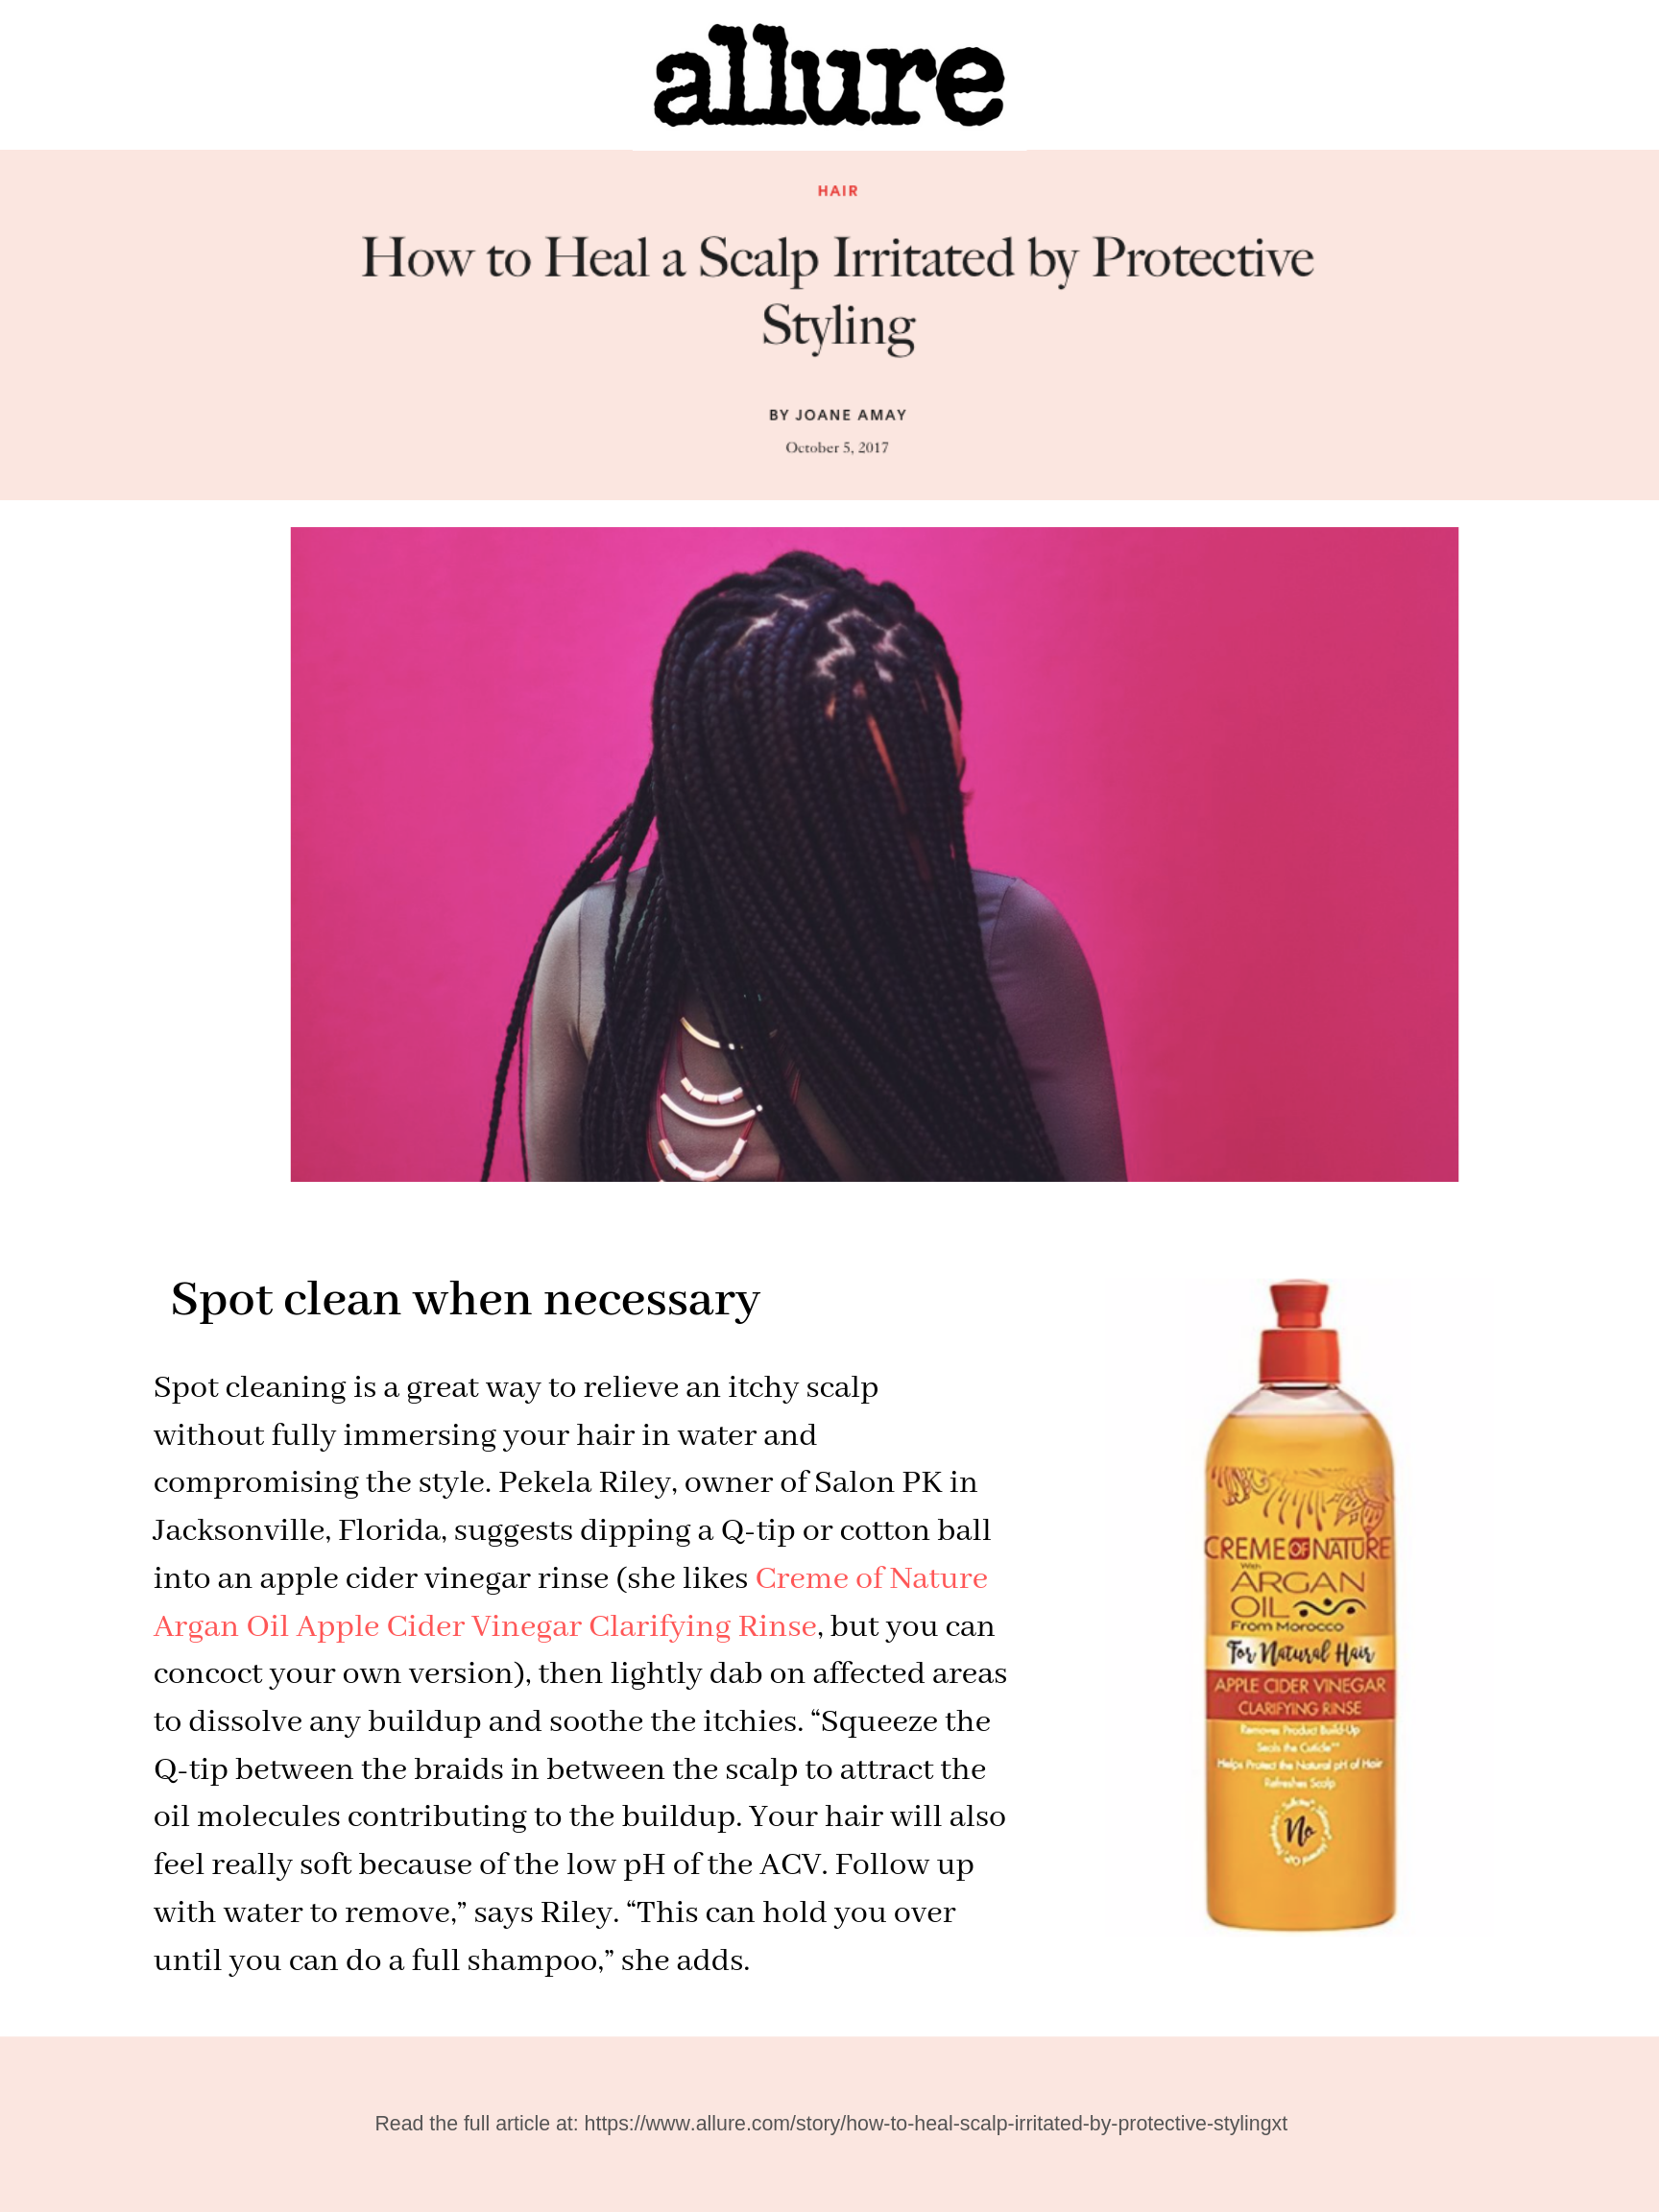 dSpot cleaning is a great way to relieve an itchy scalp without fully immersing your hair in water and compromising the style. Pekela Riley, owner of Salon PK in Jacksonville, Florida, suggests dipping a Q-tip or cot.png